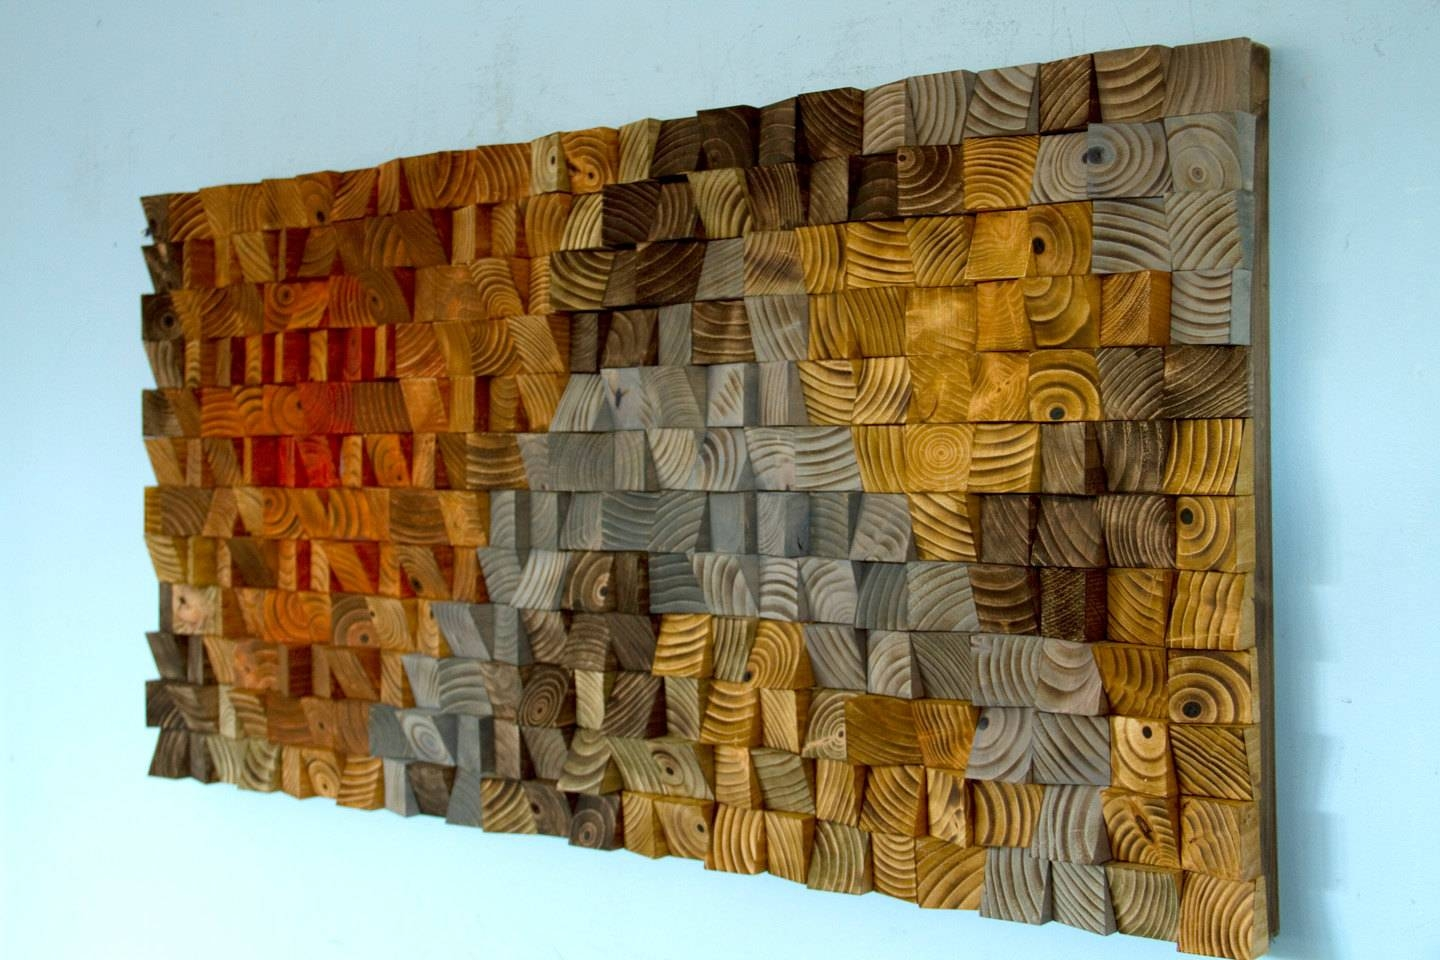 Rustic Wood Wall Art Wood Wall Sculpture Abstract Wood Art With Regard To Most Current Wood Wall Art (View 17 of 25)